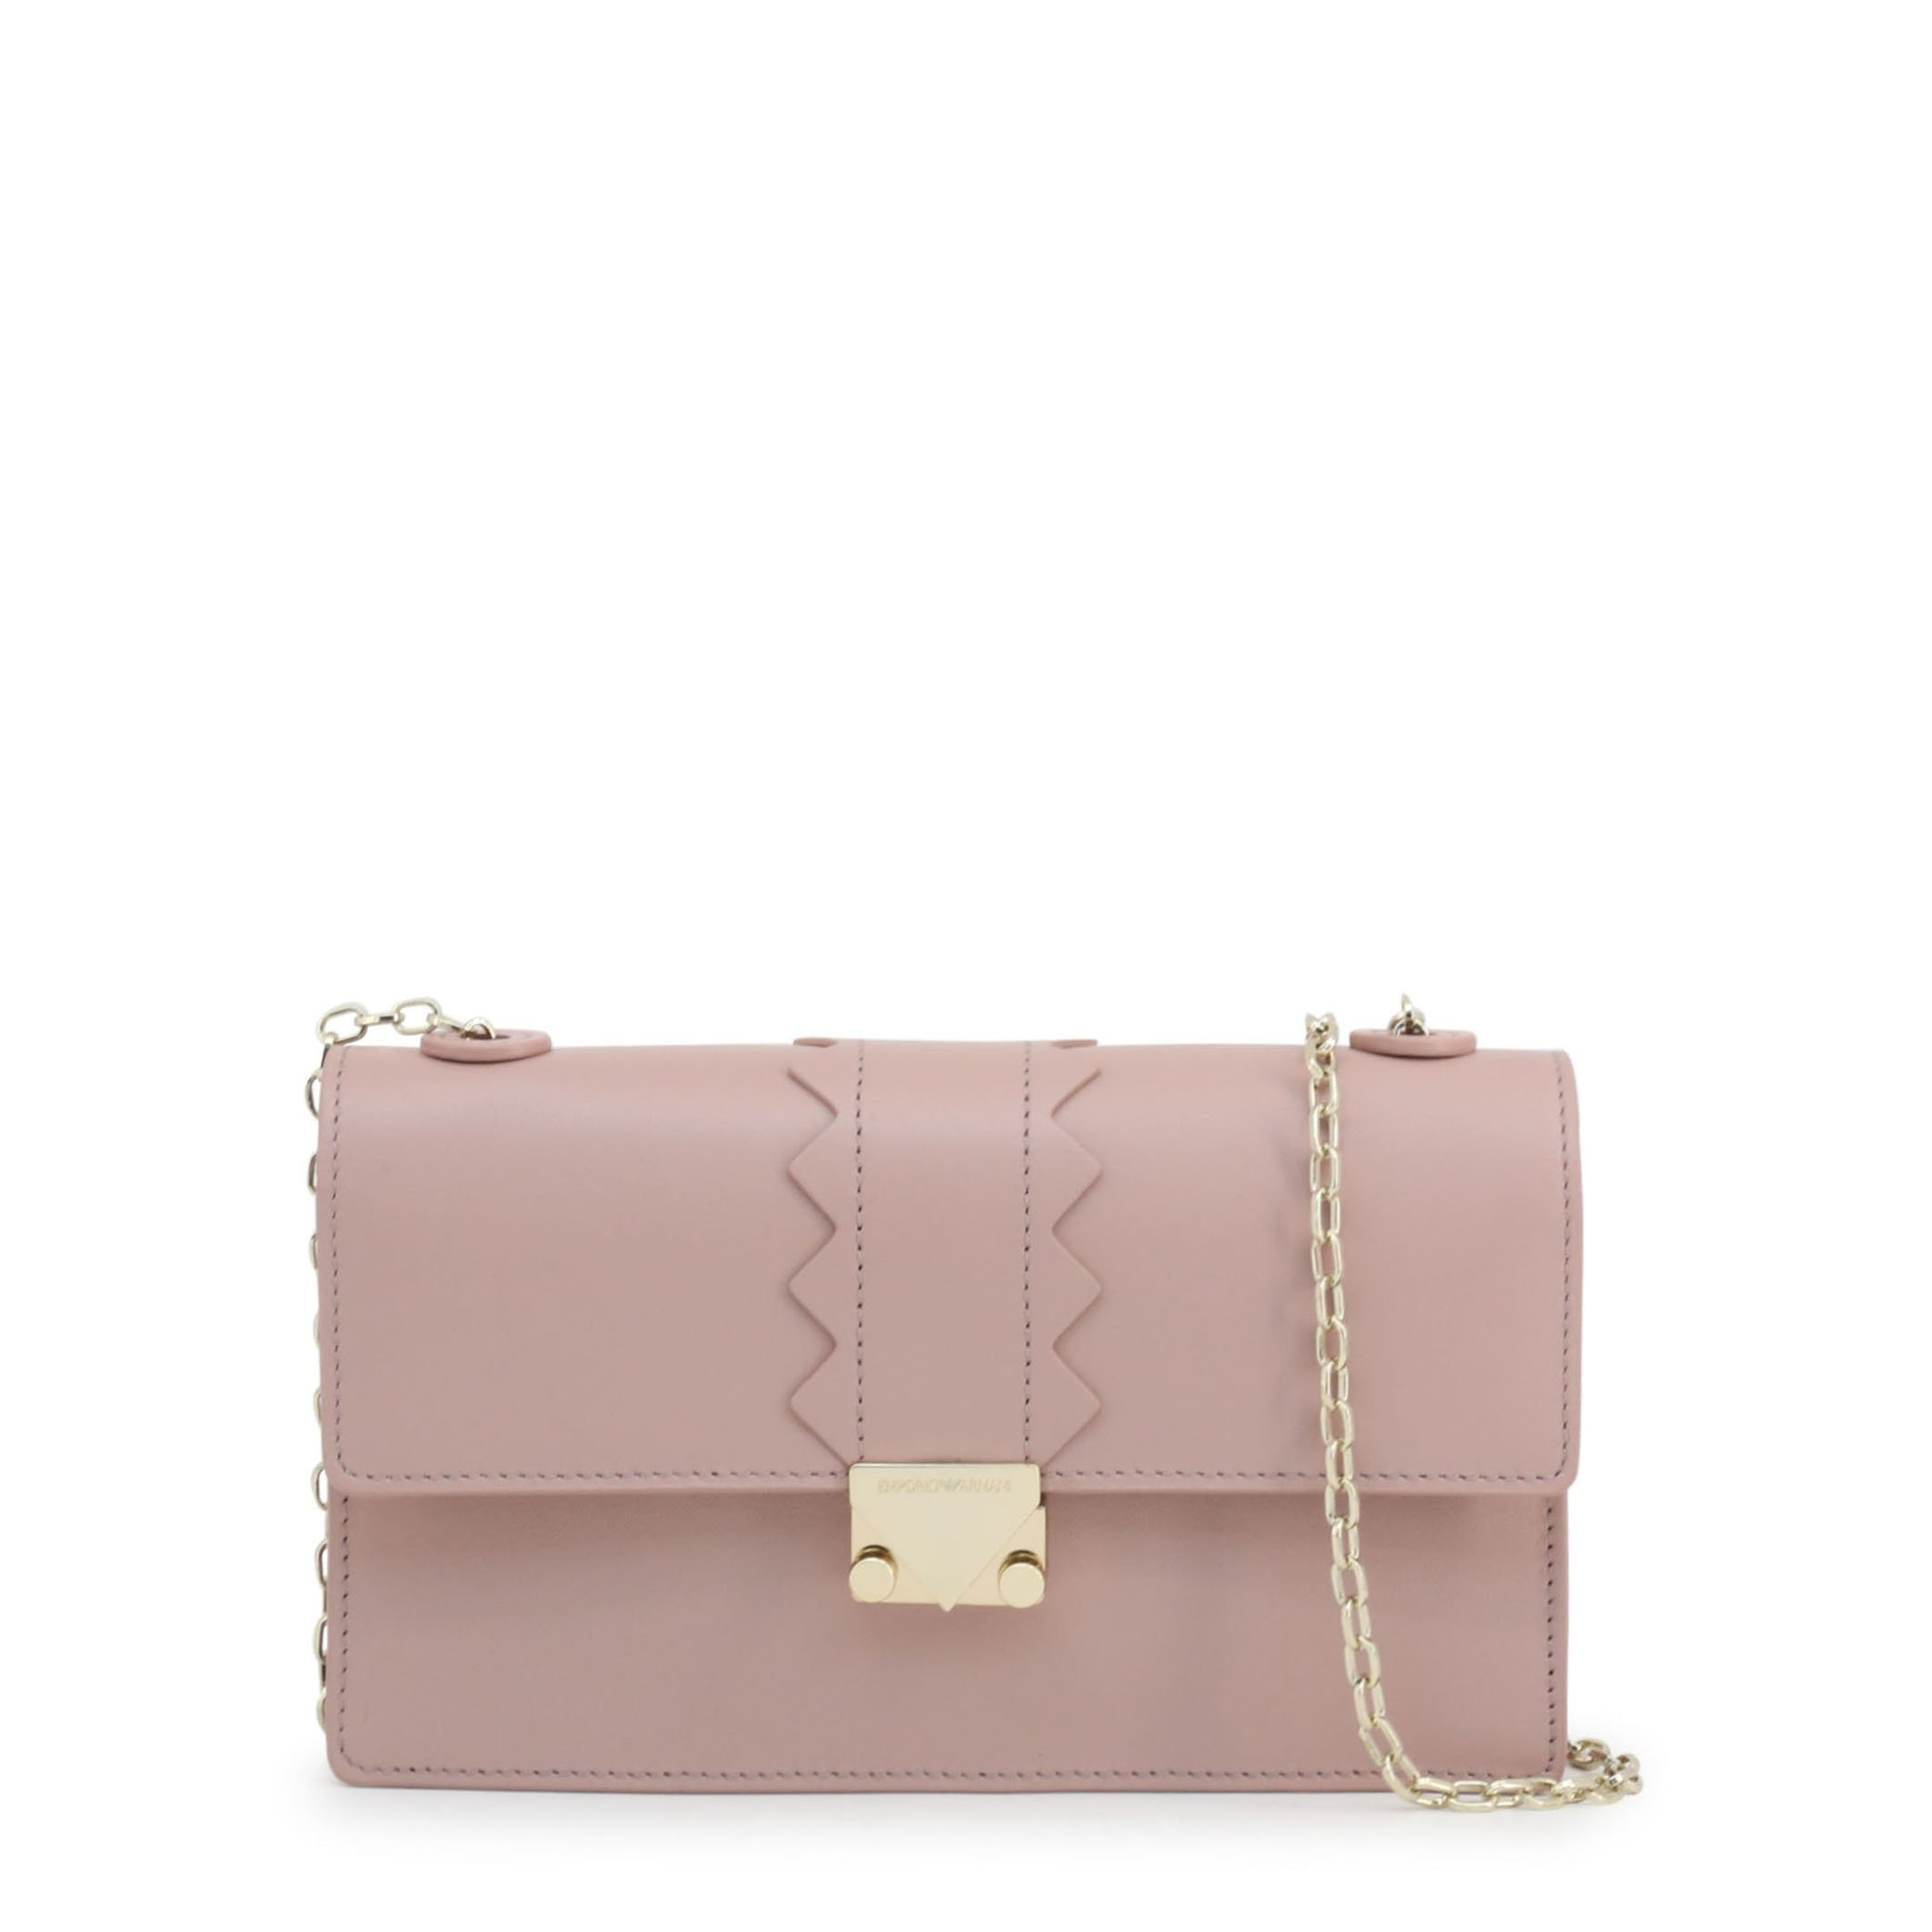 Emporio Armani Women's Clutch Bag Various Colours Y3H087_YDC1A - pink NOSIZE